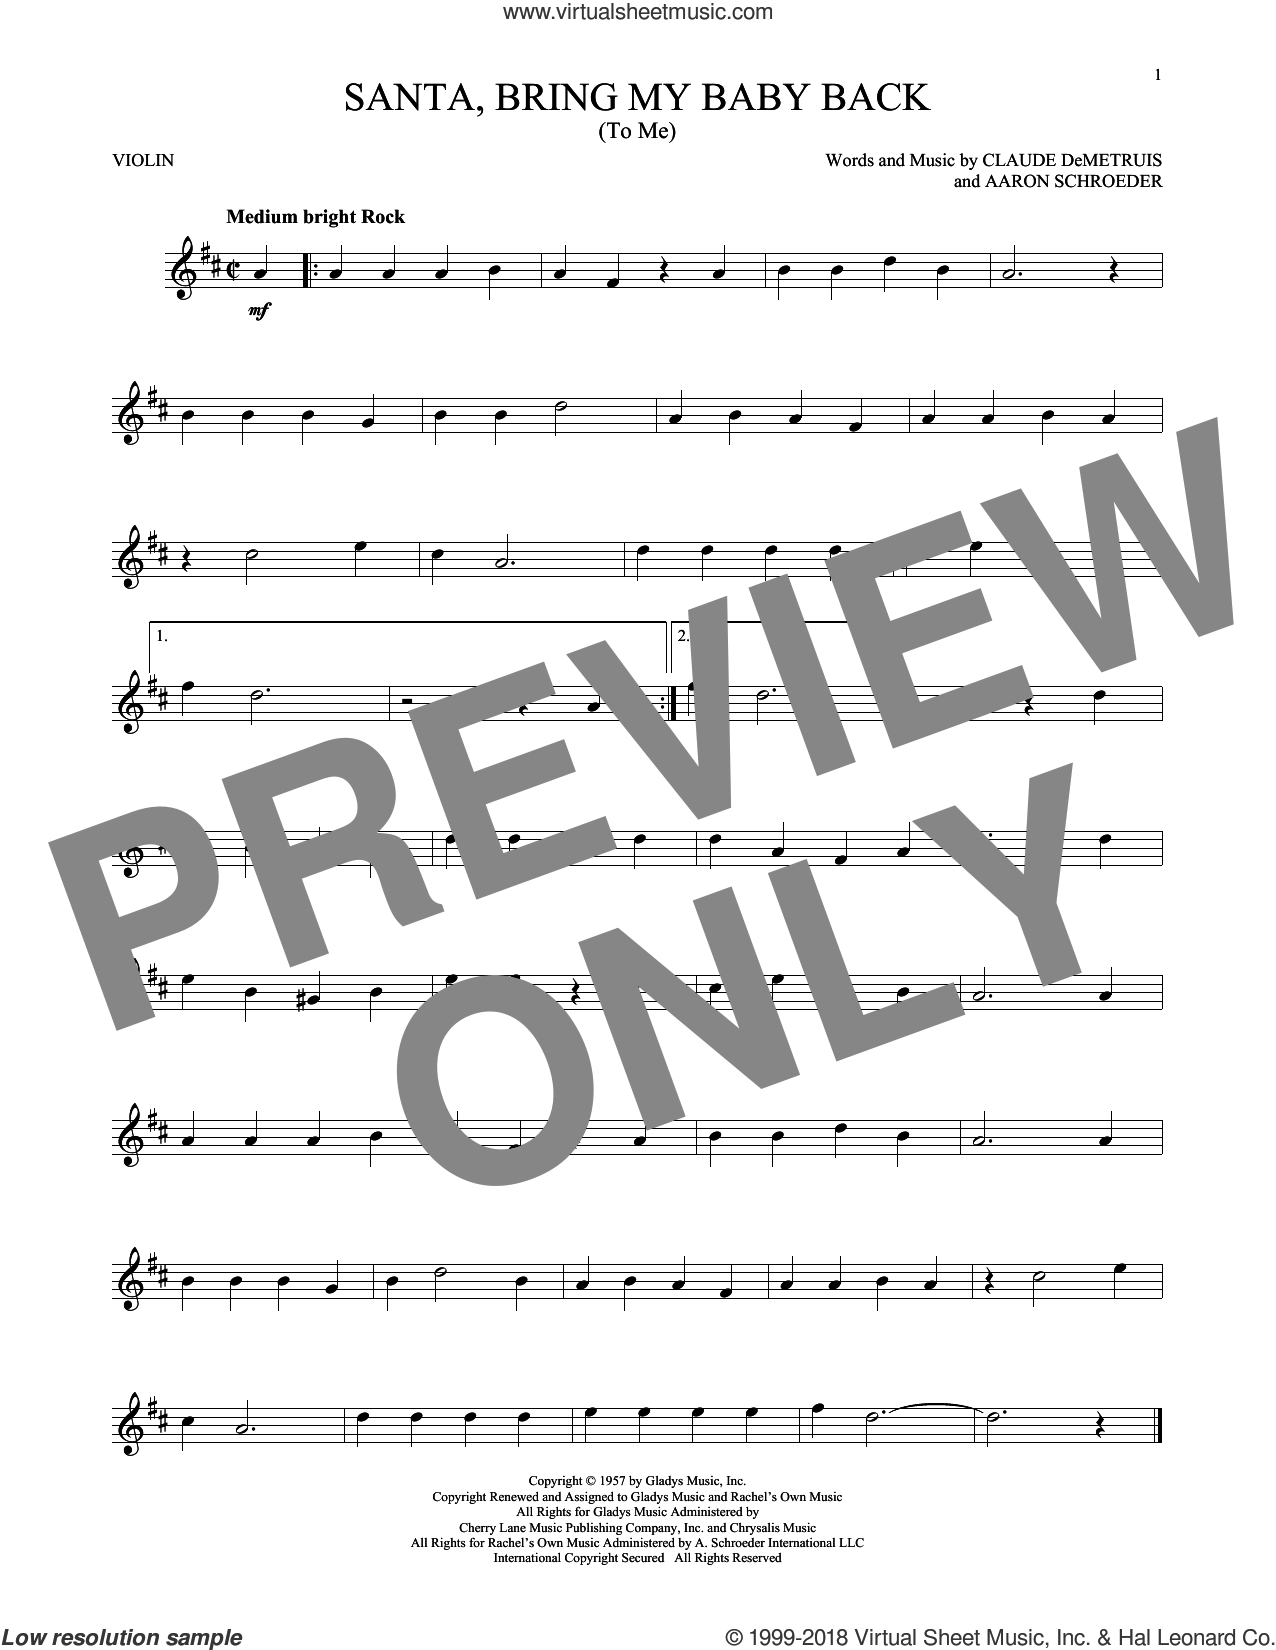 Santa, Bring My Baby Back (To Me) sheet music for violin solo by Elvis Presley, Aaron Schroeder and Claude DeMetruis, intermediate skill level